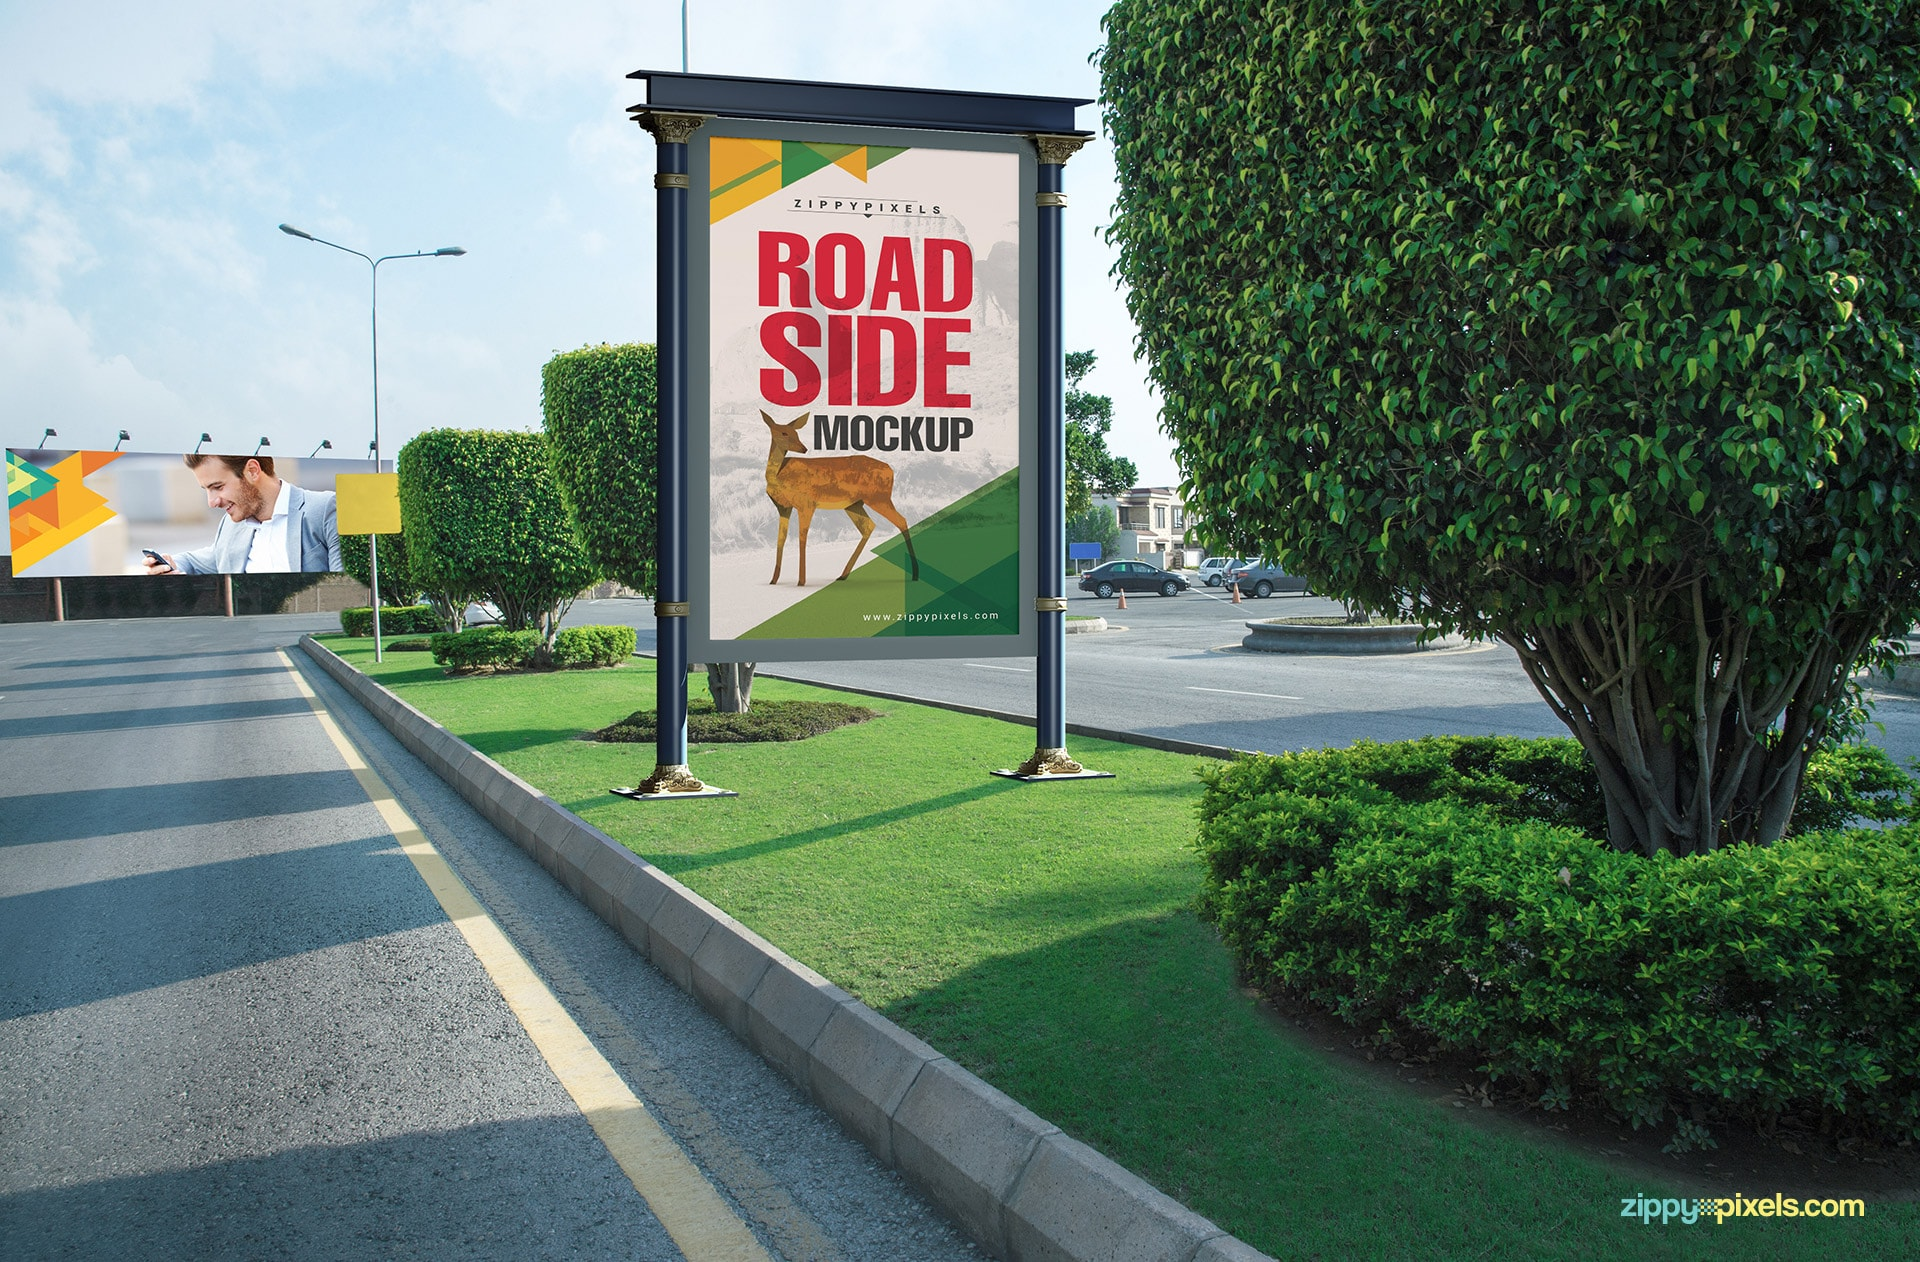 Road side poster mockup for your advertising needs.